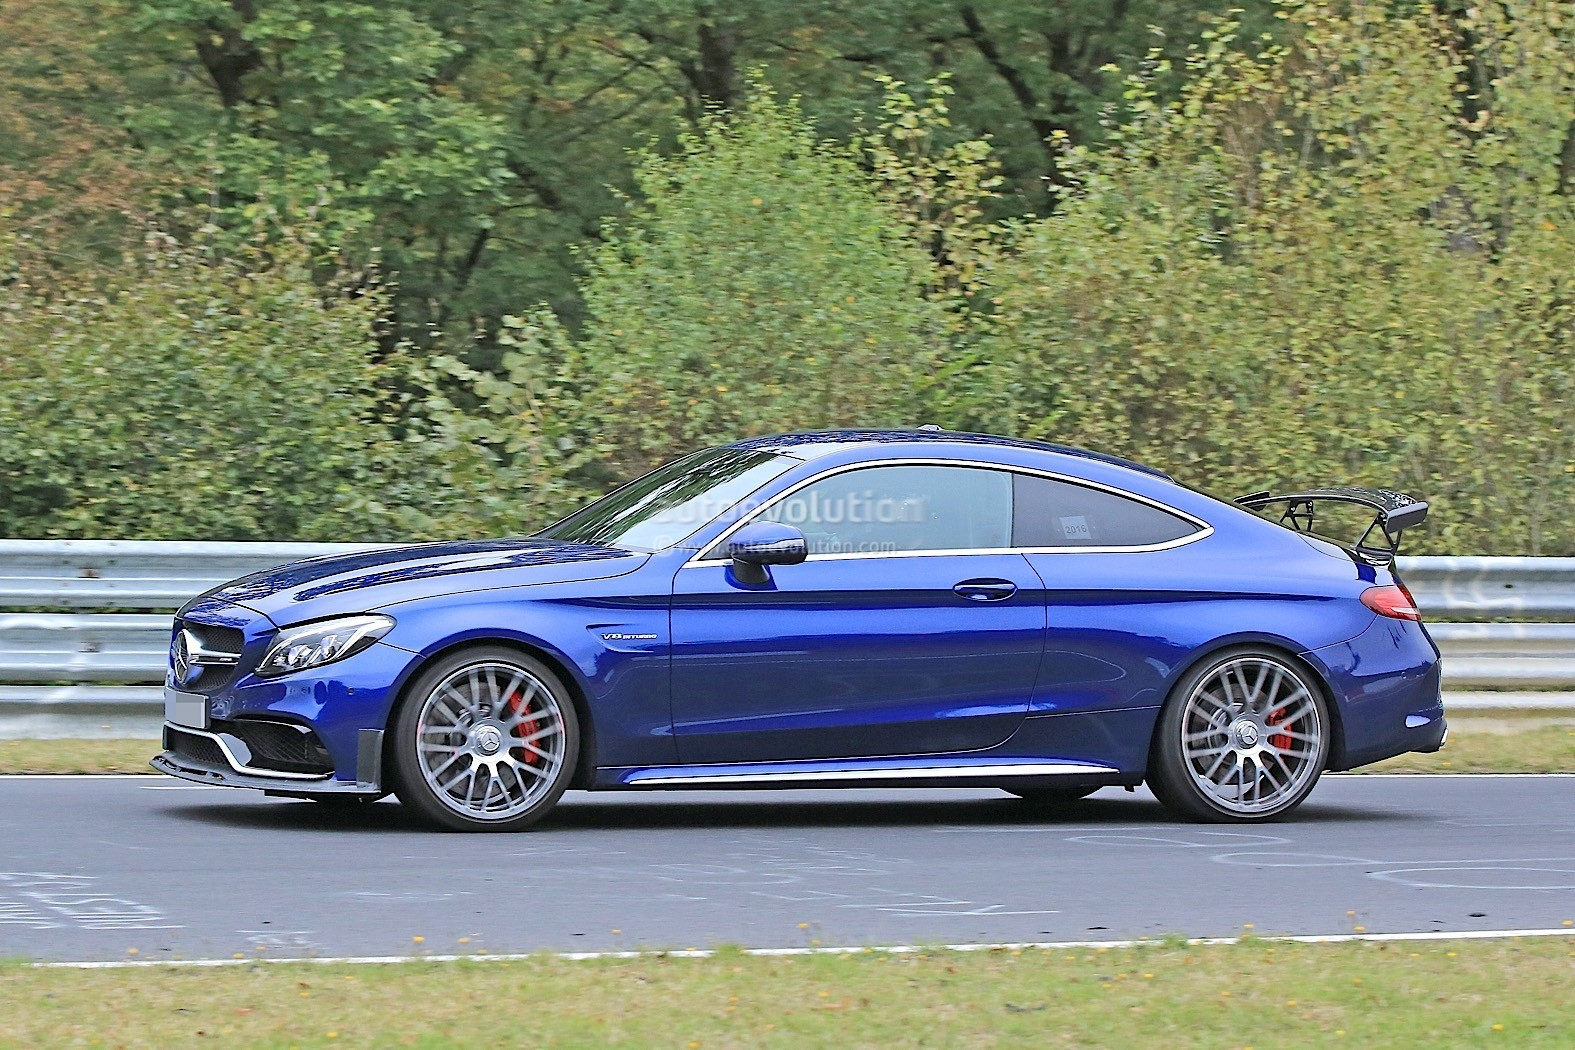 2018 mercedes amg c63 r coupe comes to crash the bmw m4 gts party autoevolution. Black Bedroom Furniture Sets. Home Design Ideas